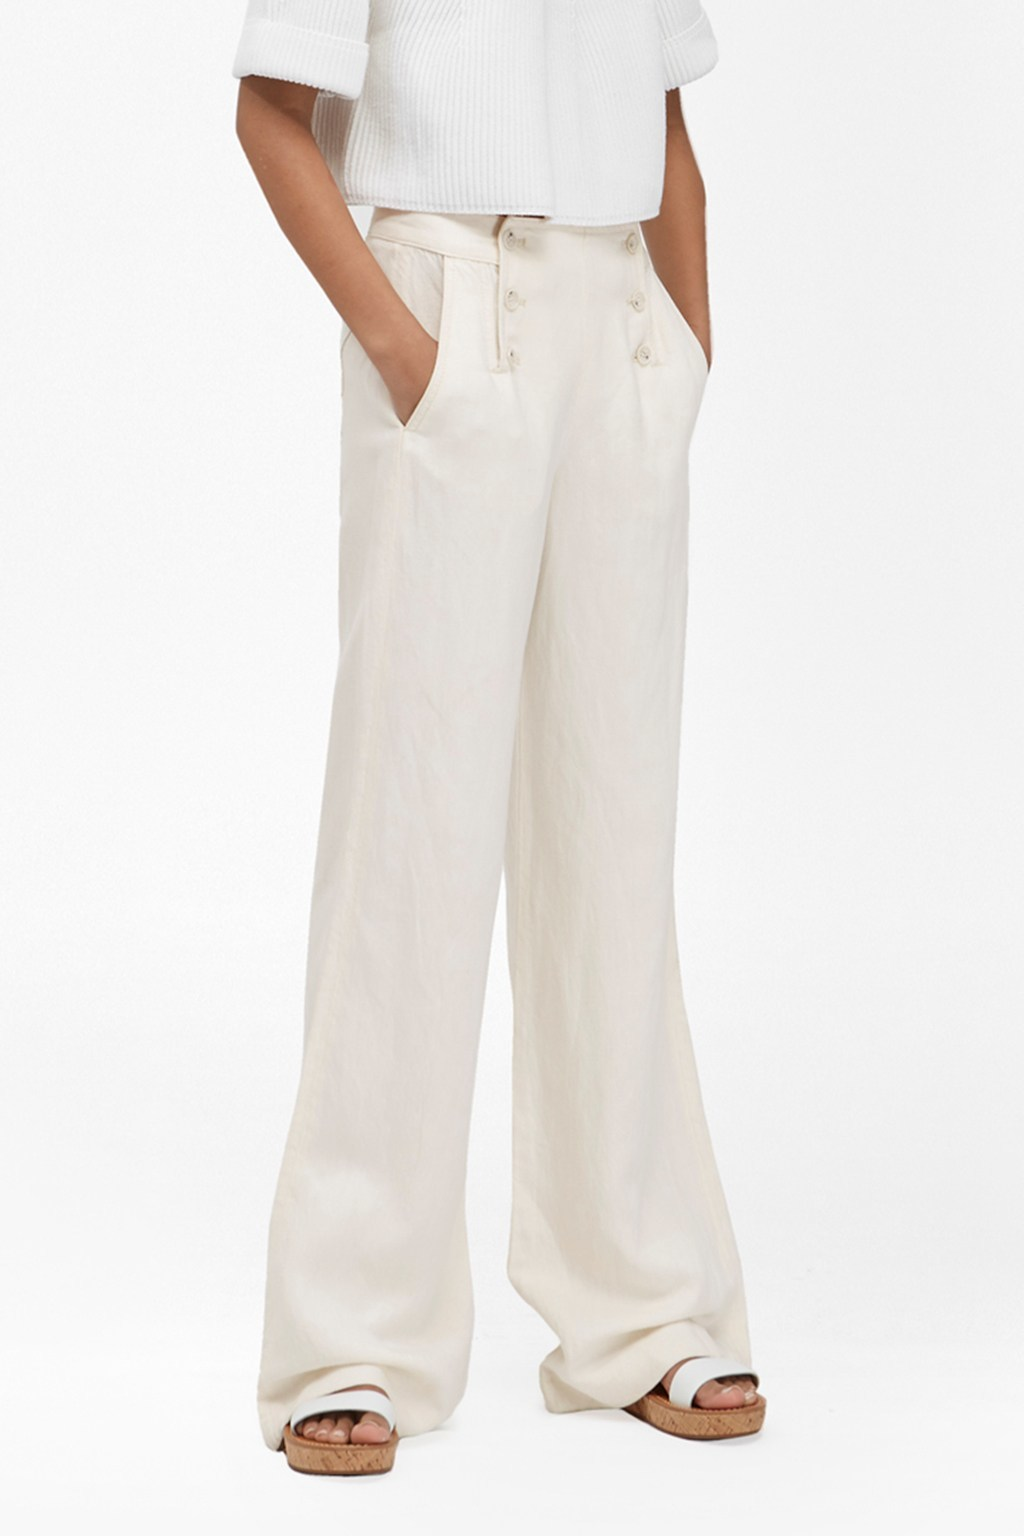 Linen Denim Wide Leg Trousers Bleach White - length: standard; pattern: plain; style: palazzo; waist: high rise; predominant colour: white; occasions: casual; fibres: linen - 100%; texture group: linen; fit: wide leg; pattern type: fabric; season: s/s 2016; wardrobe: basic